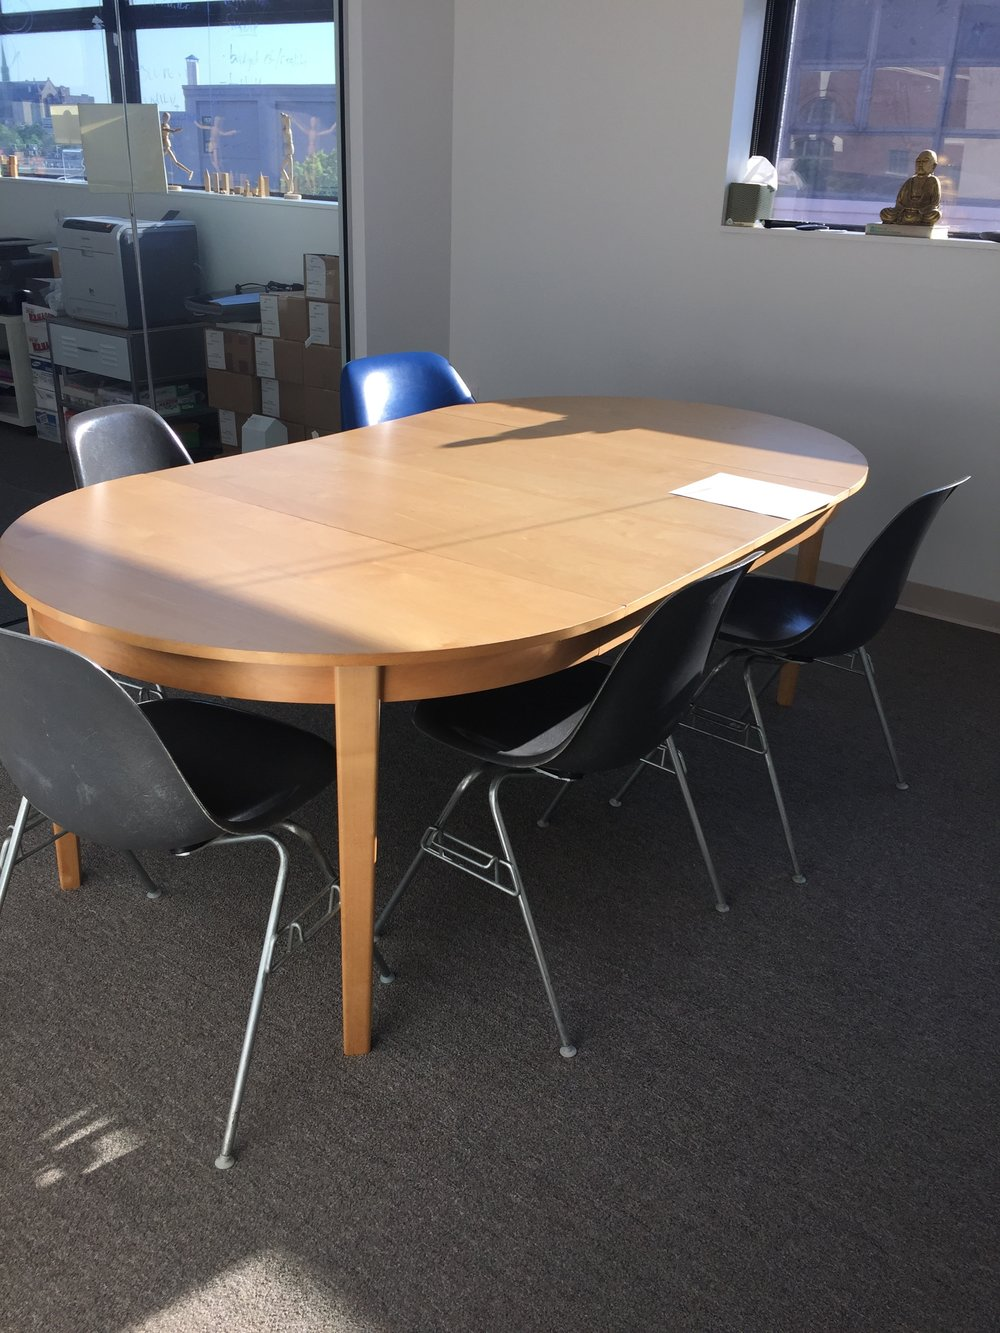 Conference Table w/2 leaves - $100